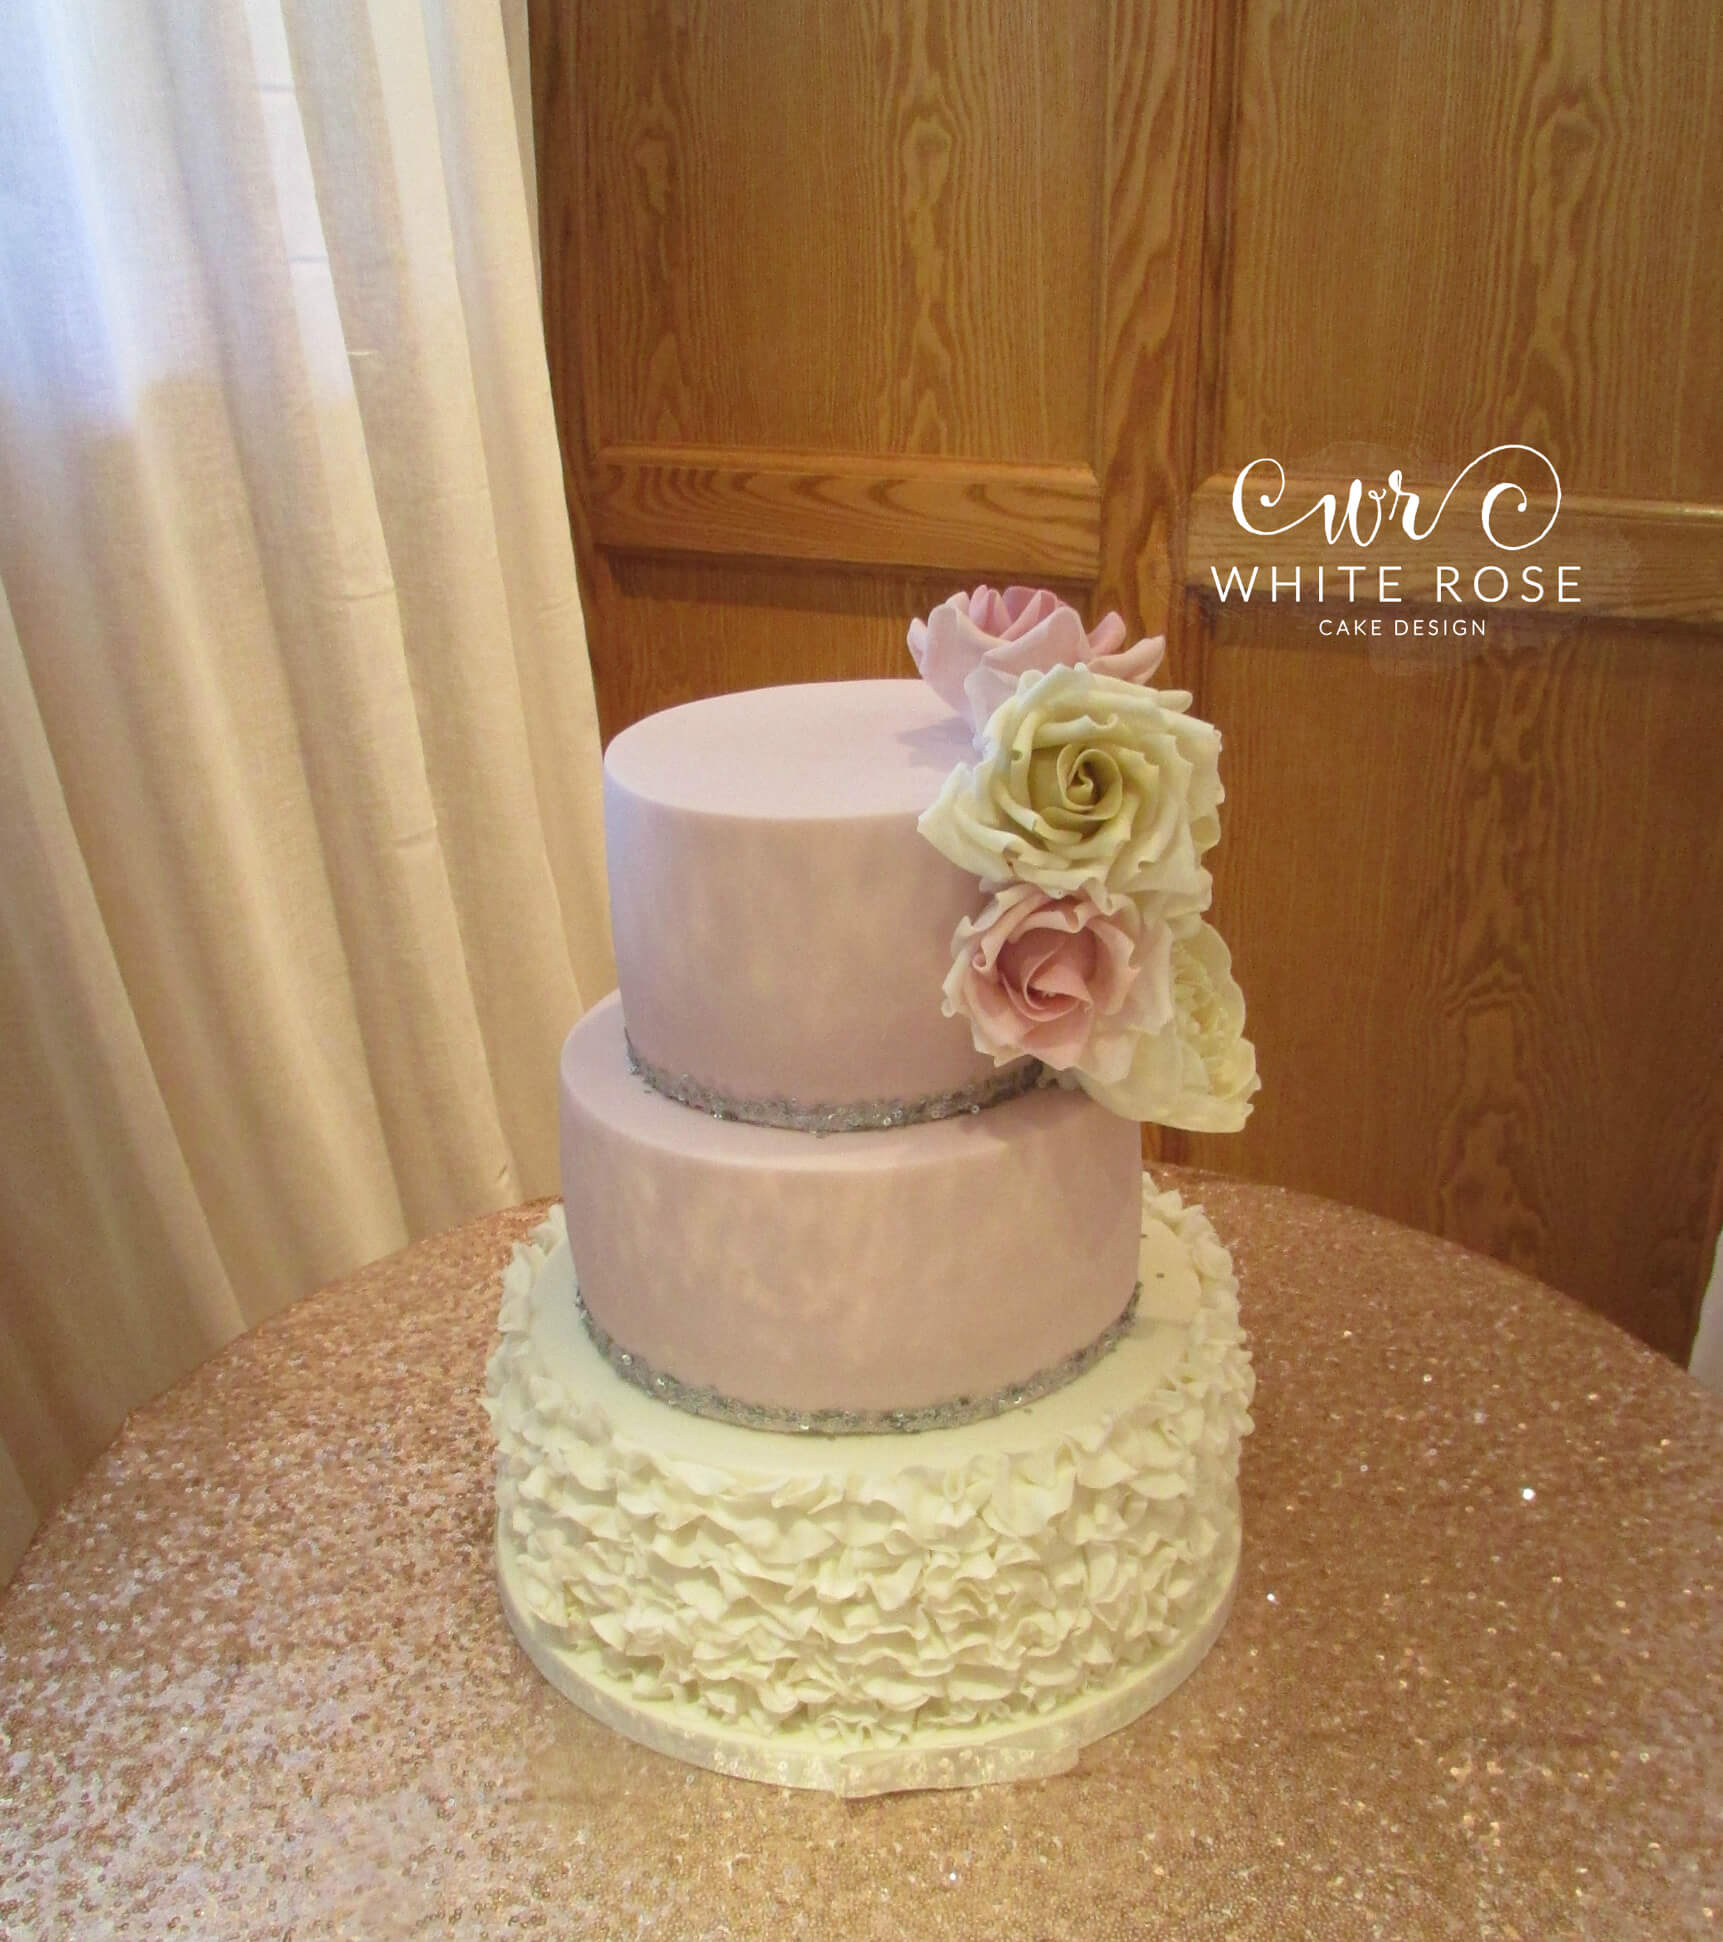 Pink and Ivory Ruffles Wedding Cake by White Rose Cake Design, Wedding Cakes in West Yorkshire